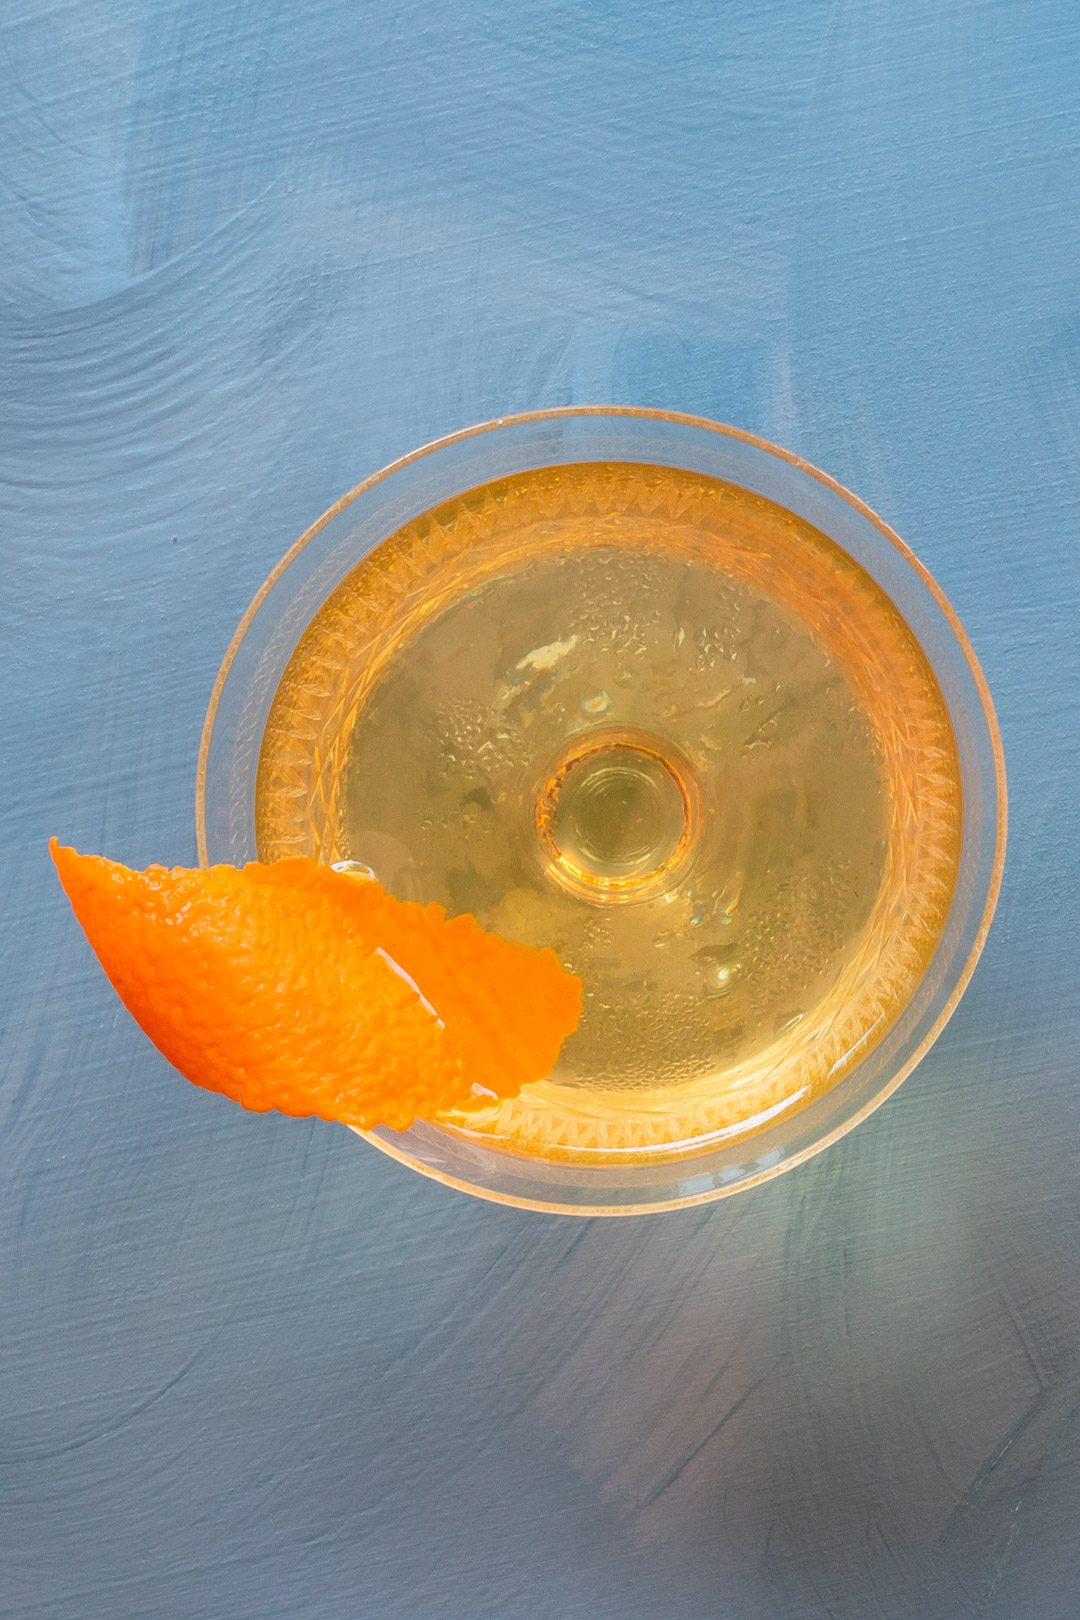 rose lavender dry martini from above on blue background